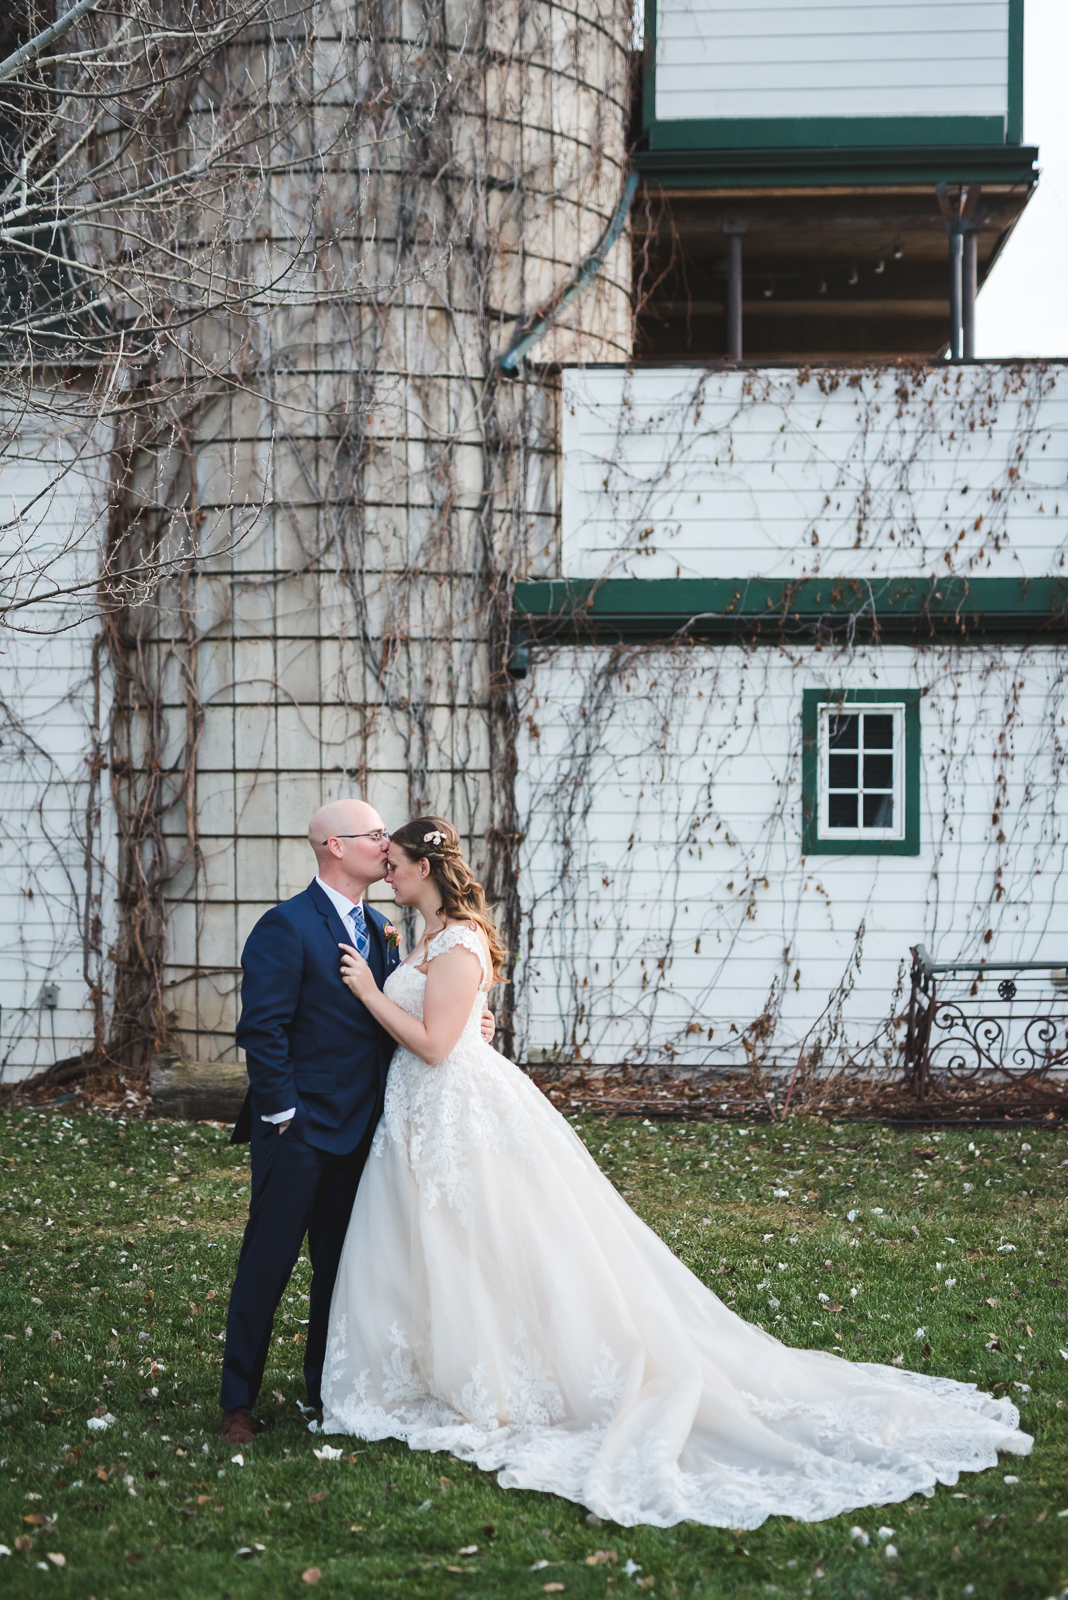 Nora & Dom | Wedding Photo | Lionsgate Event Center | From the Hip Photo